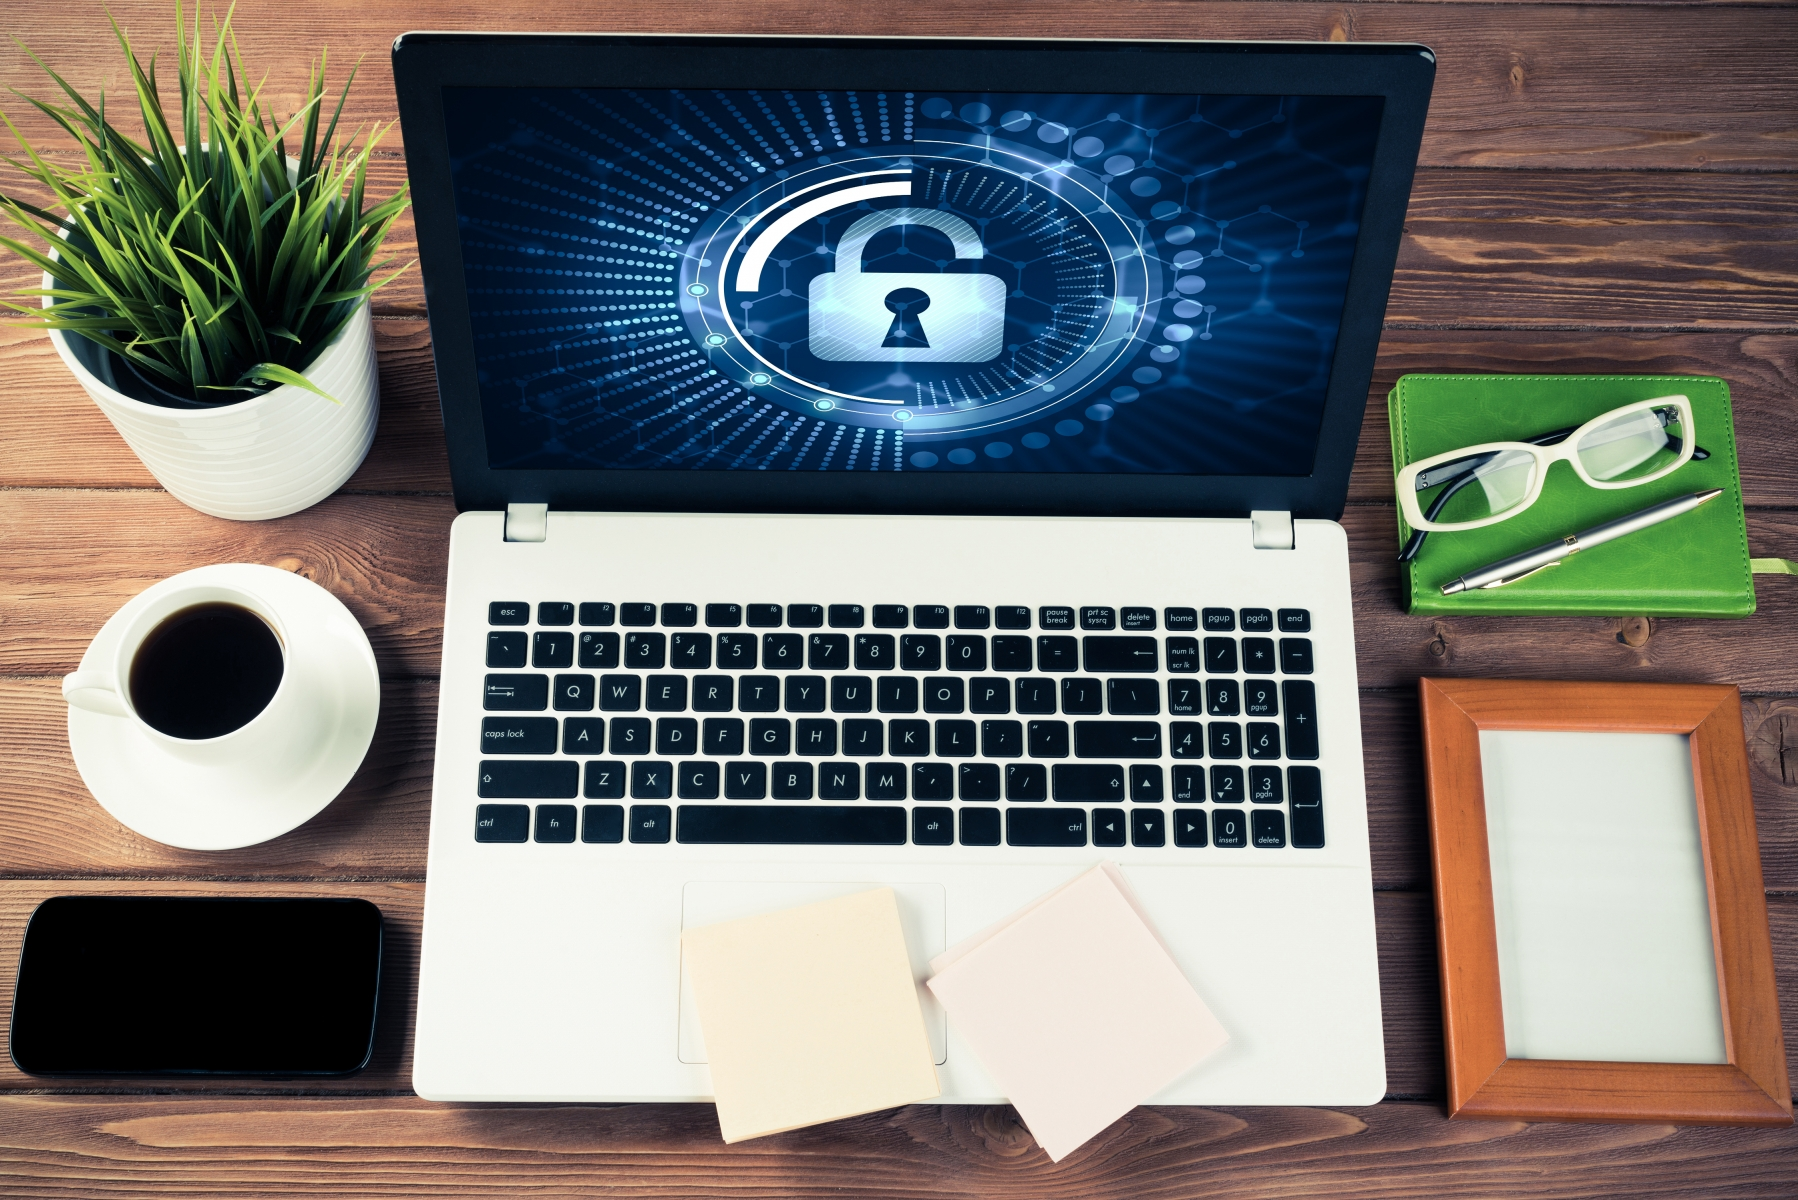 23337669-web-security-and-technology-concept-with-laptop-on-wooden-table